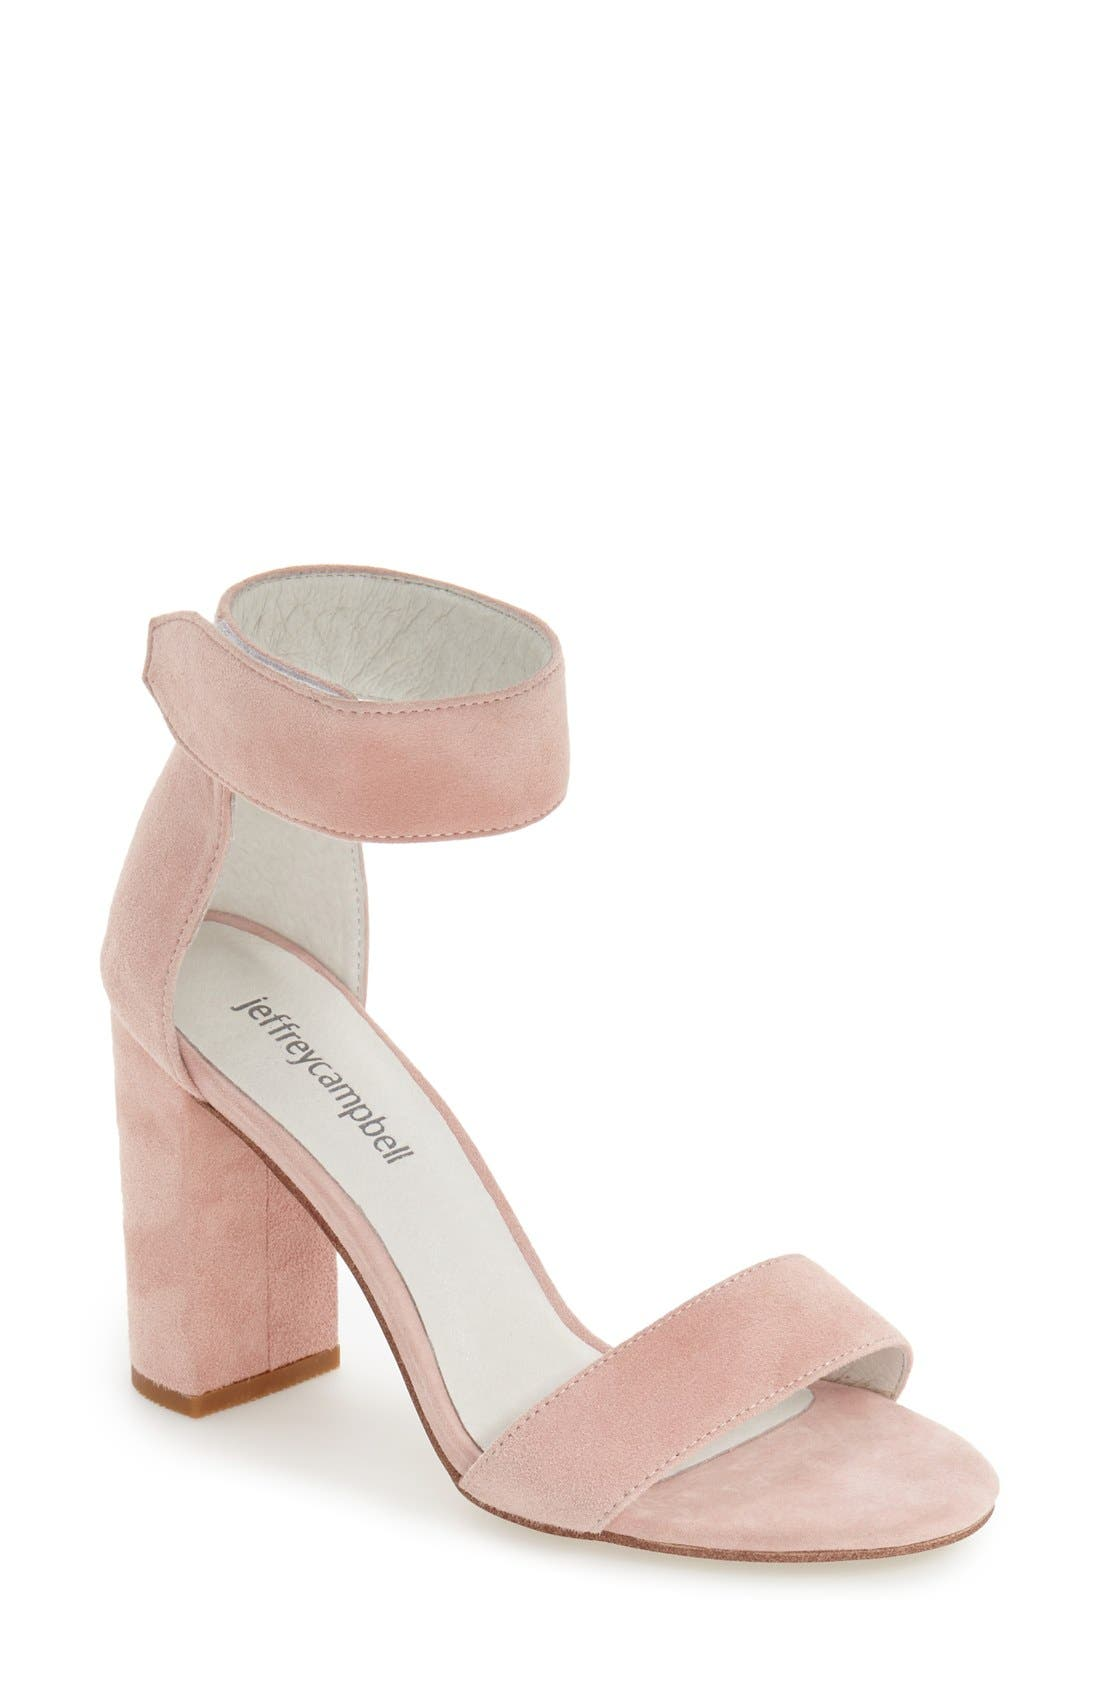 'Lindsay' Ankle Strap Sandal,                             Main thumbnail 12, color,